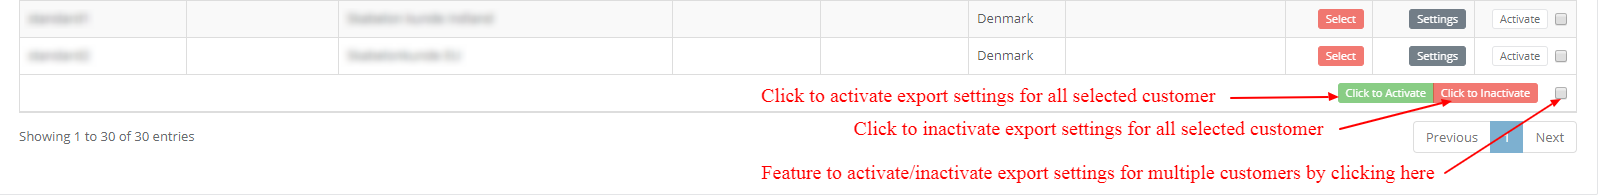 Export rules - Activation of multiple customers